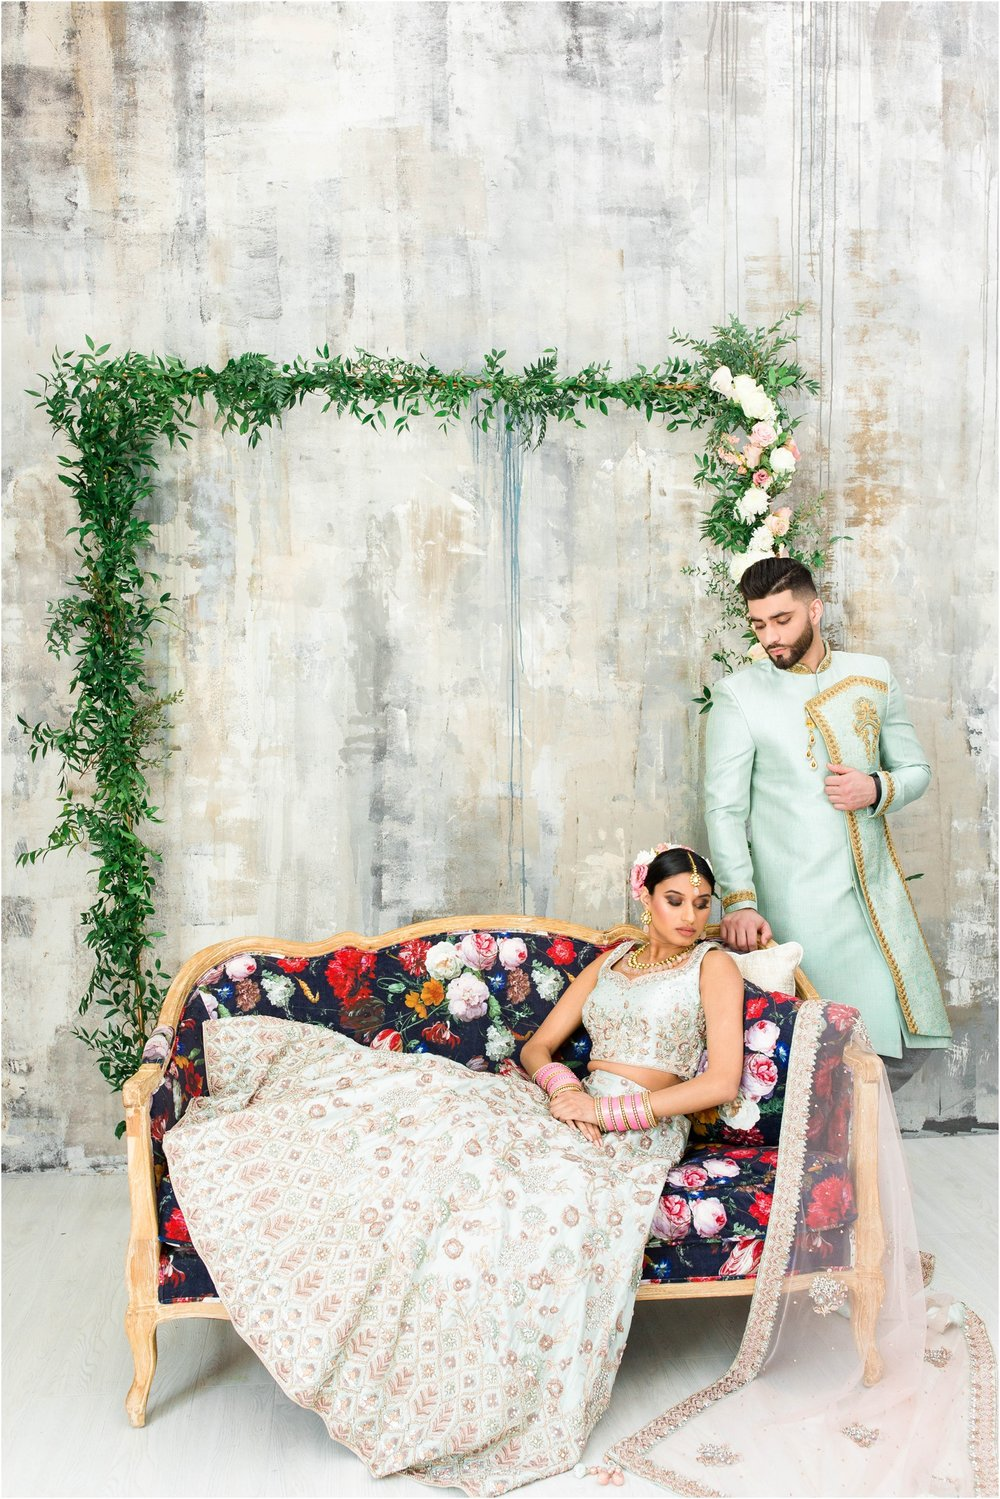 Mint-Room-Studios-Rustic-Blush-Styled-Shoot-Toronto-Mississauga-Brampton-Scarborough-GTA-Pakistani-Indian-Wedding-Engagement-Photographer-Photography_0017.jpg